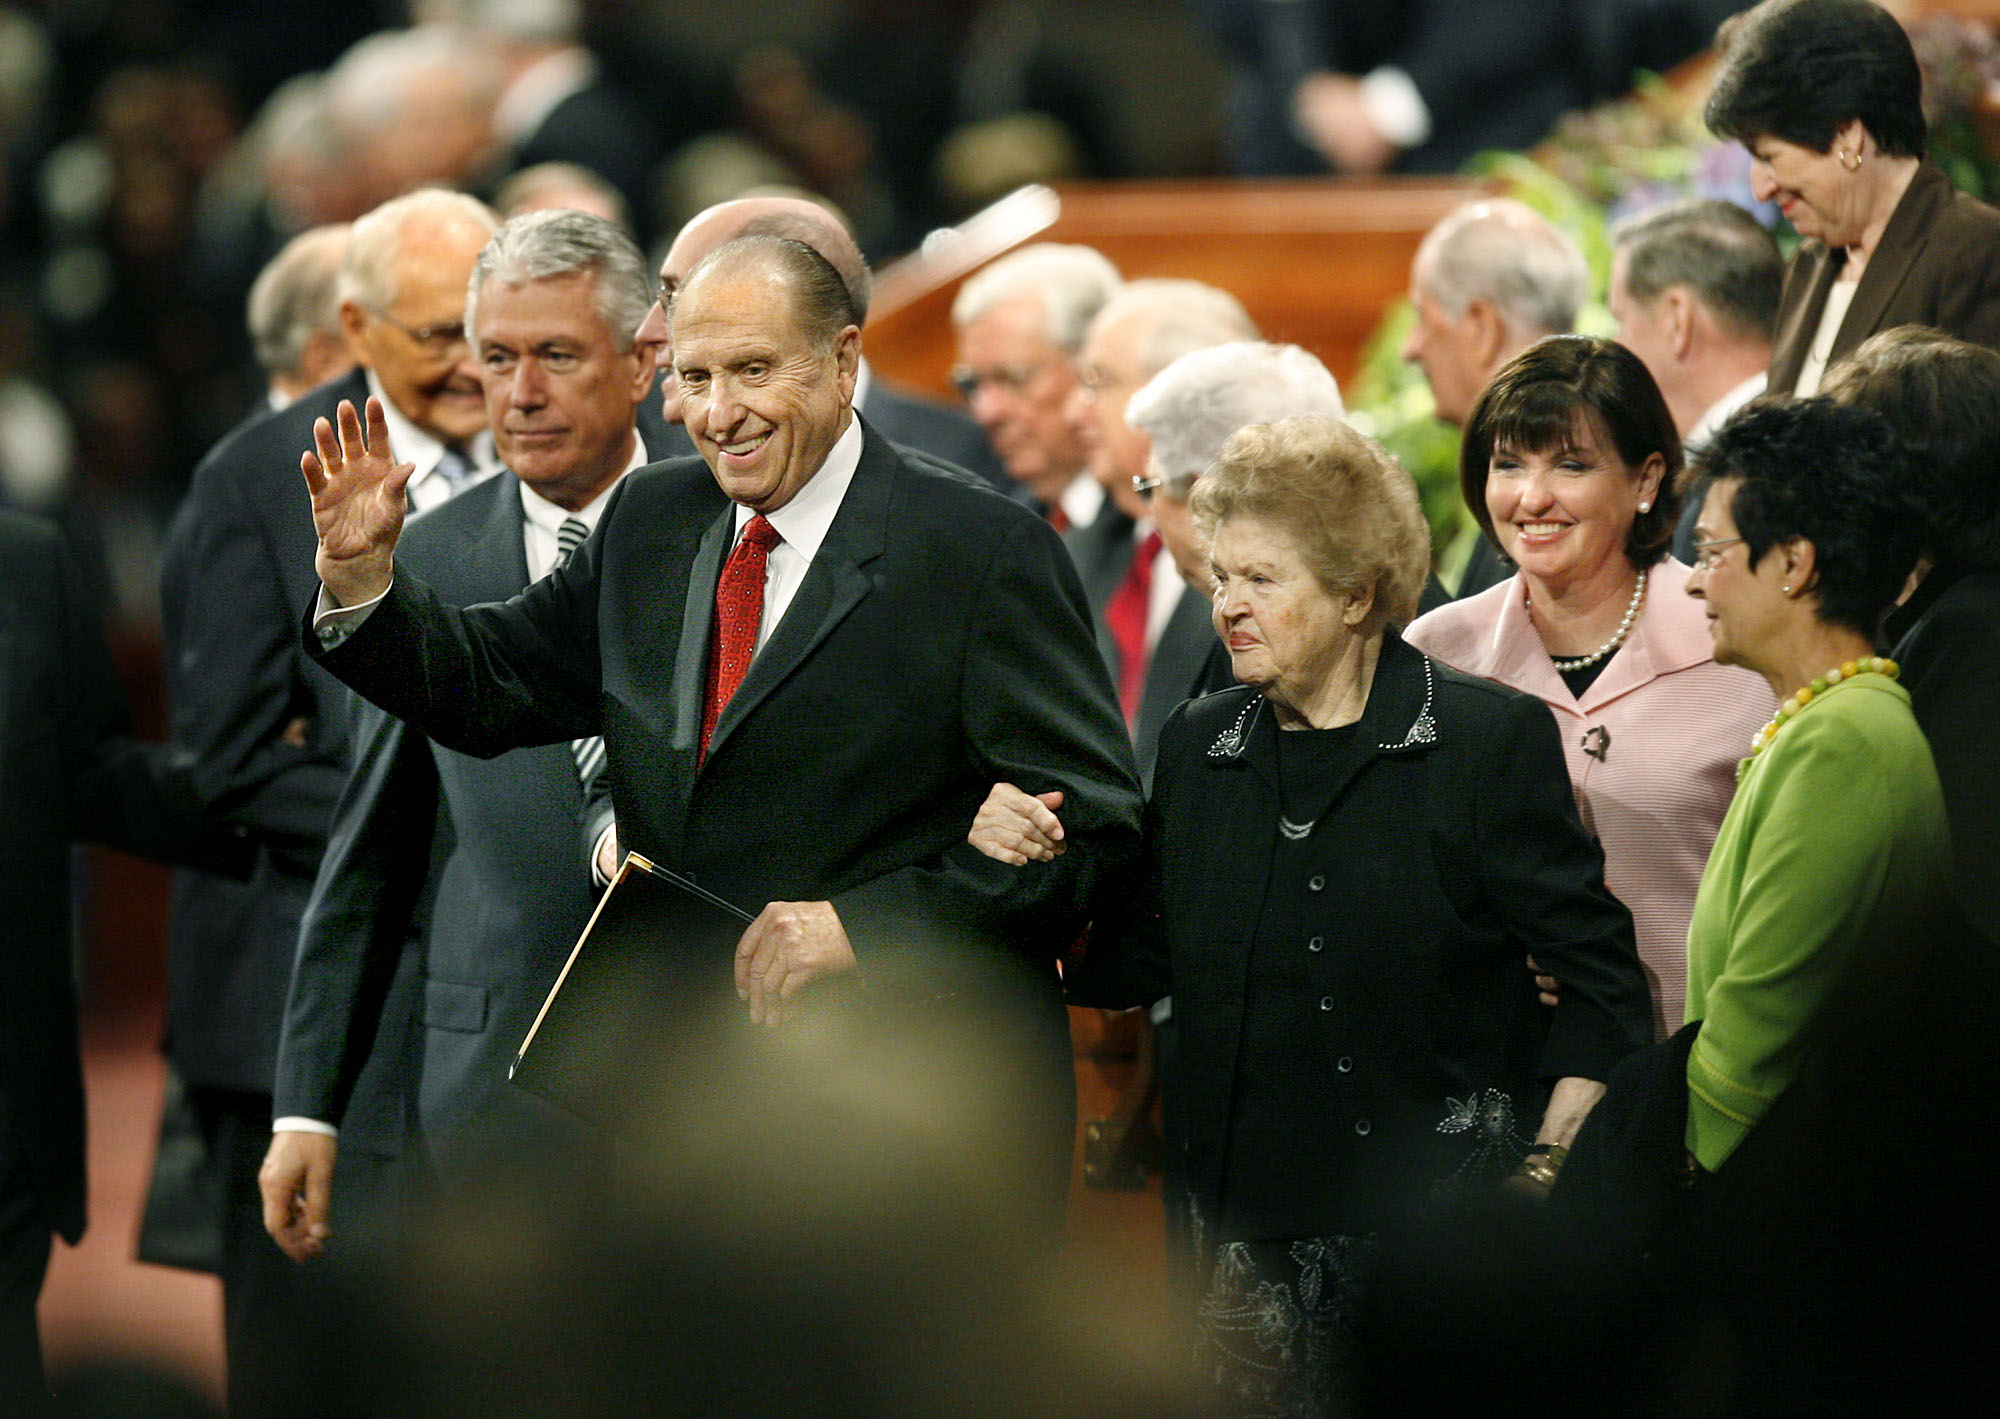 (Scott Sommerdorf  |  The Salt Lake Tribune) President Thomas S. Monson leaves the Conference Center with his wife, Frances, on his arm after the morning session of the 179th Semiannual General Conference in October 2009